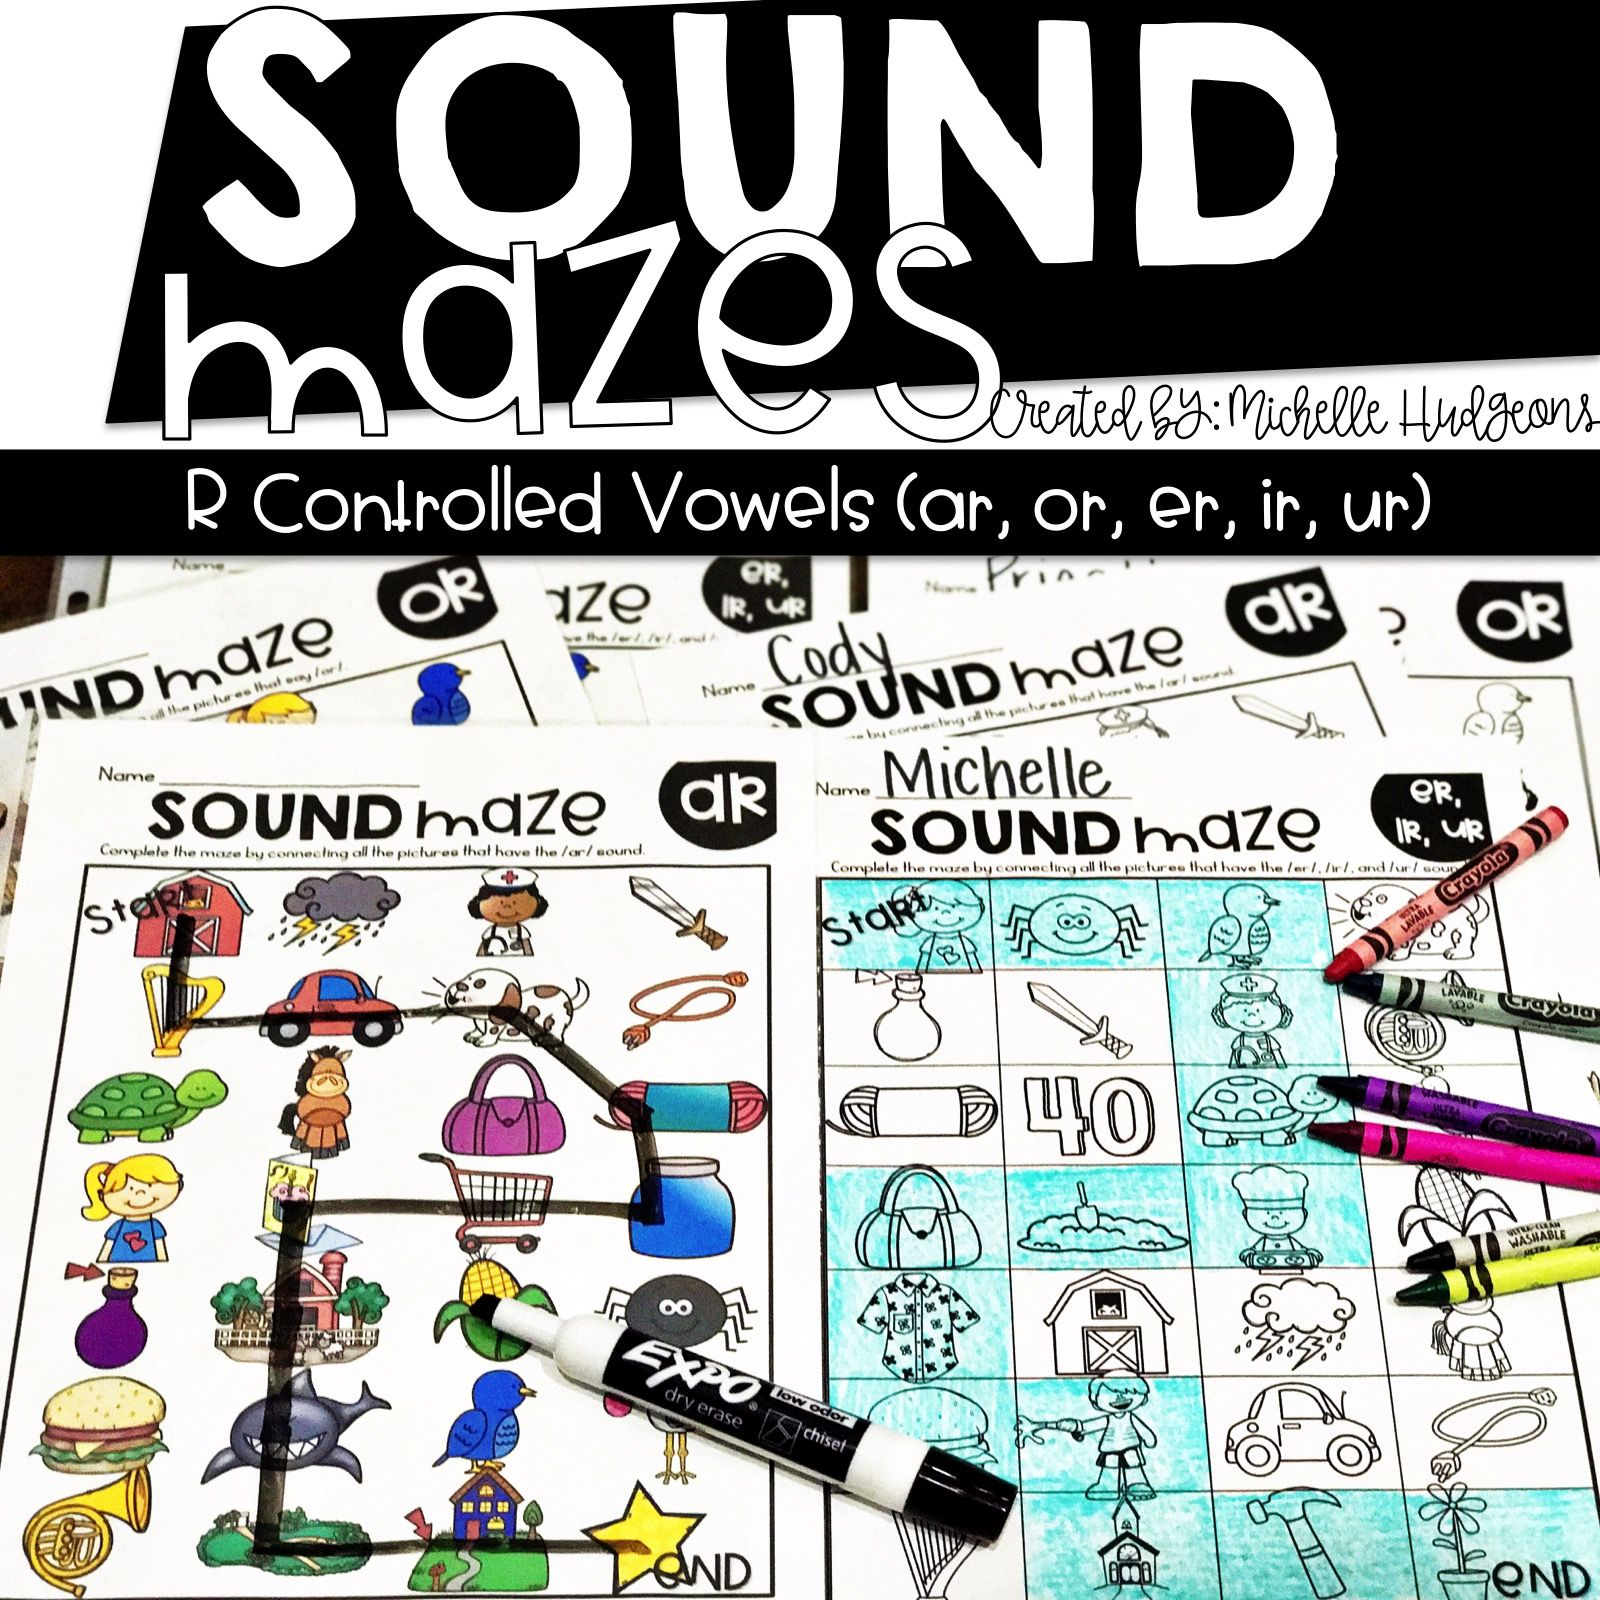 Sound Mazes For R Controlled Vowels